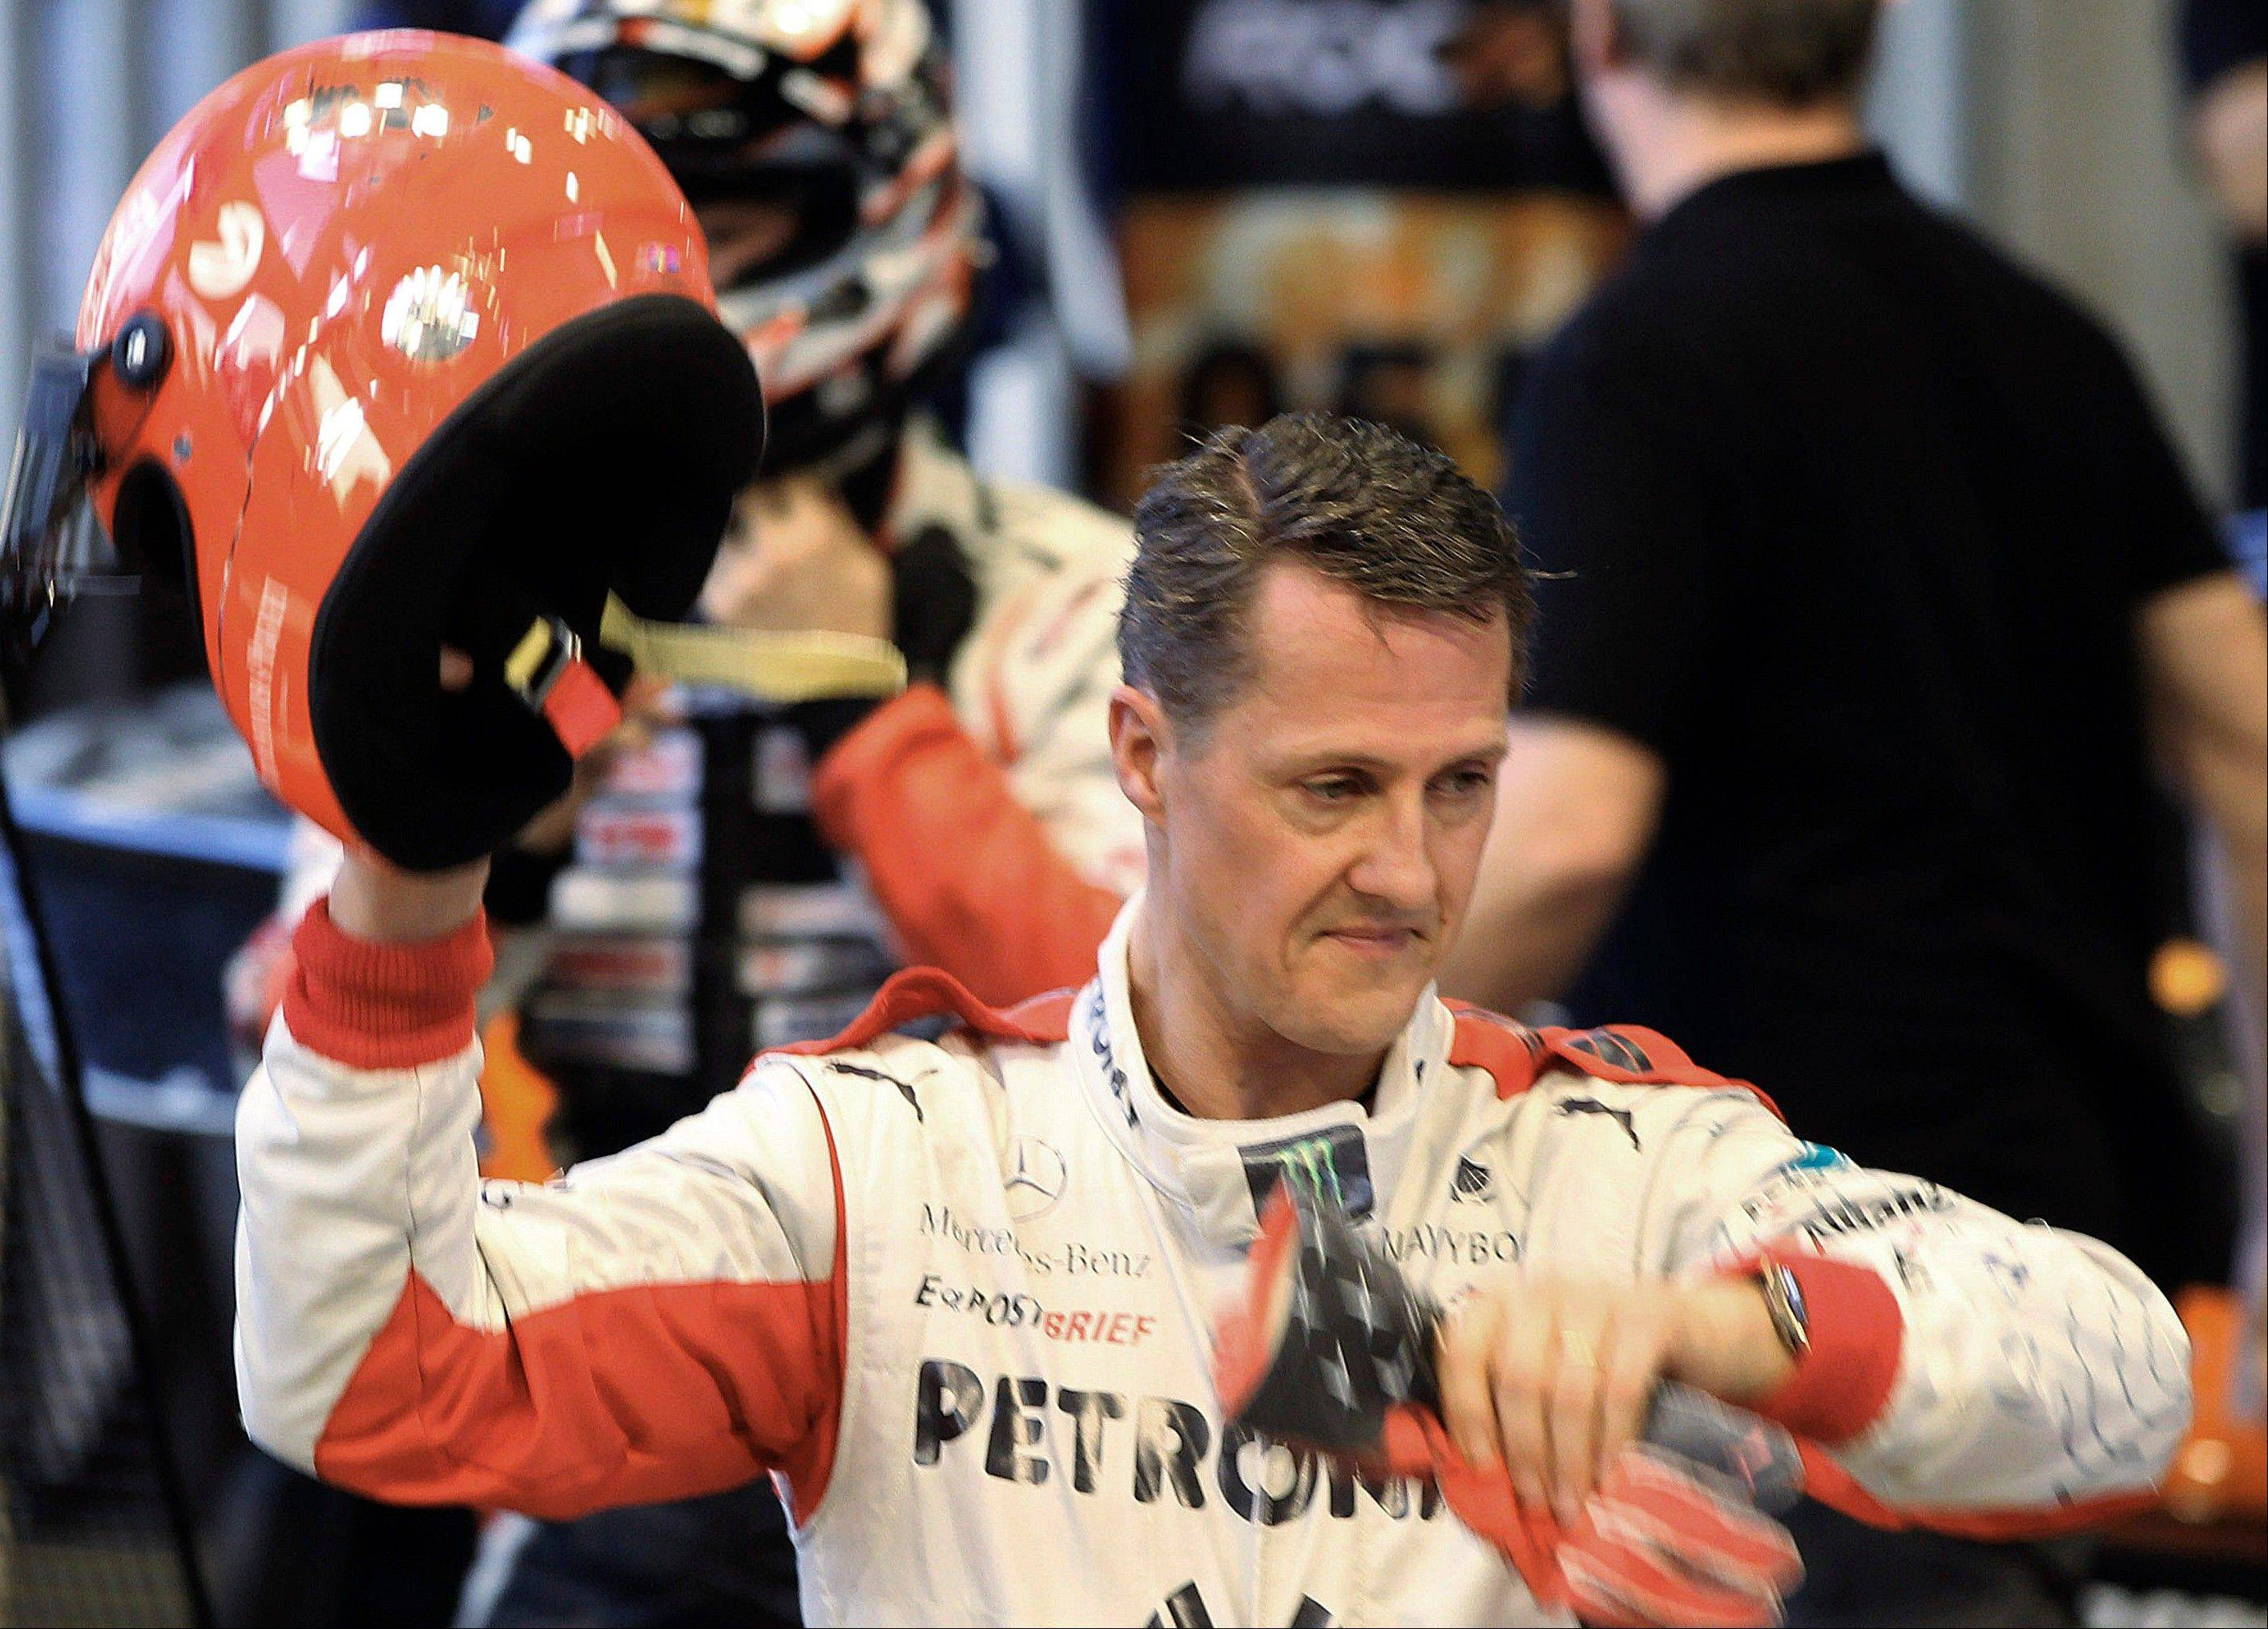 Formula One champion Michael Schumacher remains in a medically induced coma after a skiing accident on Sunday in the French Alps.